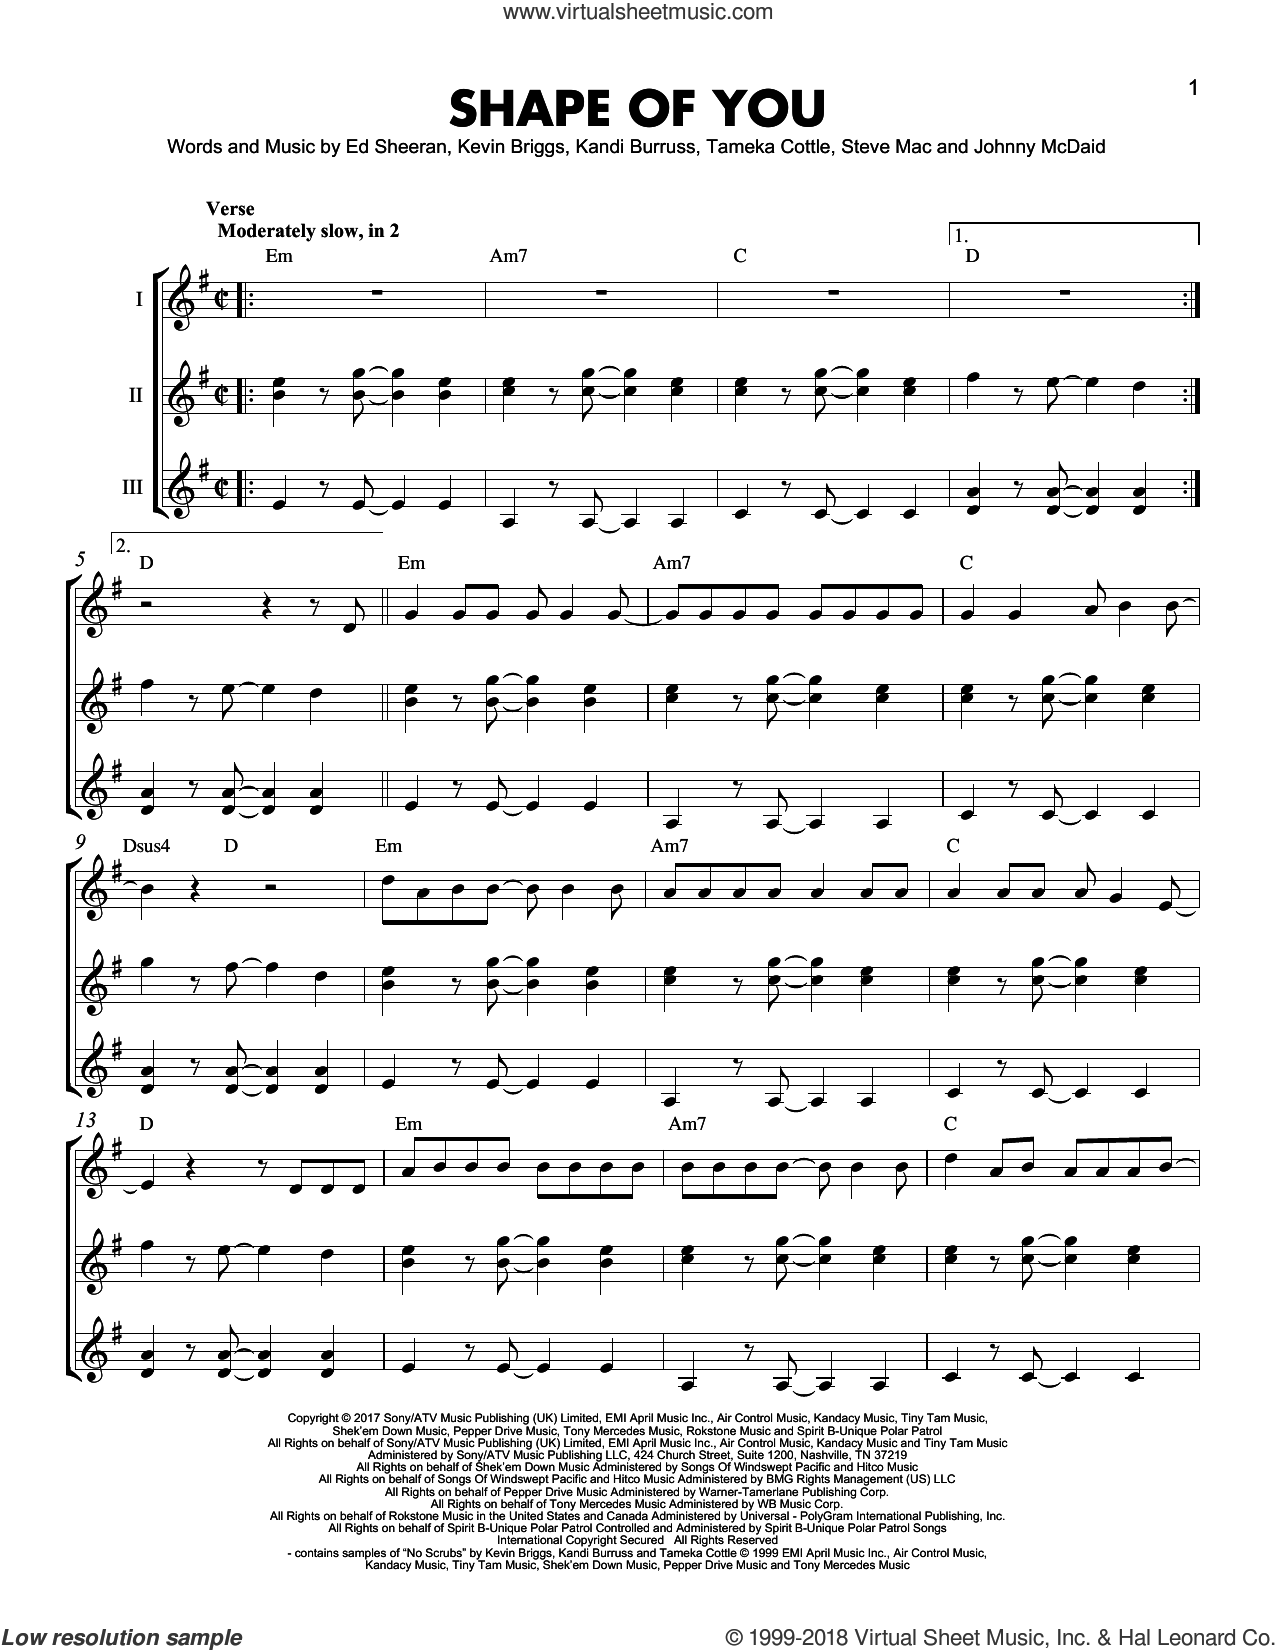 Shape Of You sheet music for guitar ensemble by Ed Sheeran, Johnny McDaid, Kandi Burruss, Kevin Briggs, Steve Mac and Tameka Cottle, intermediate skill level